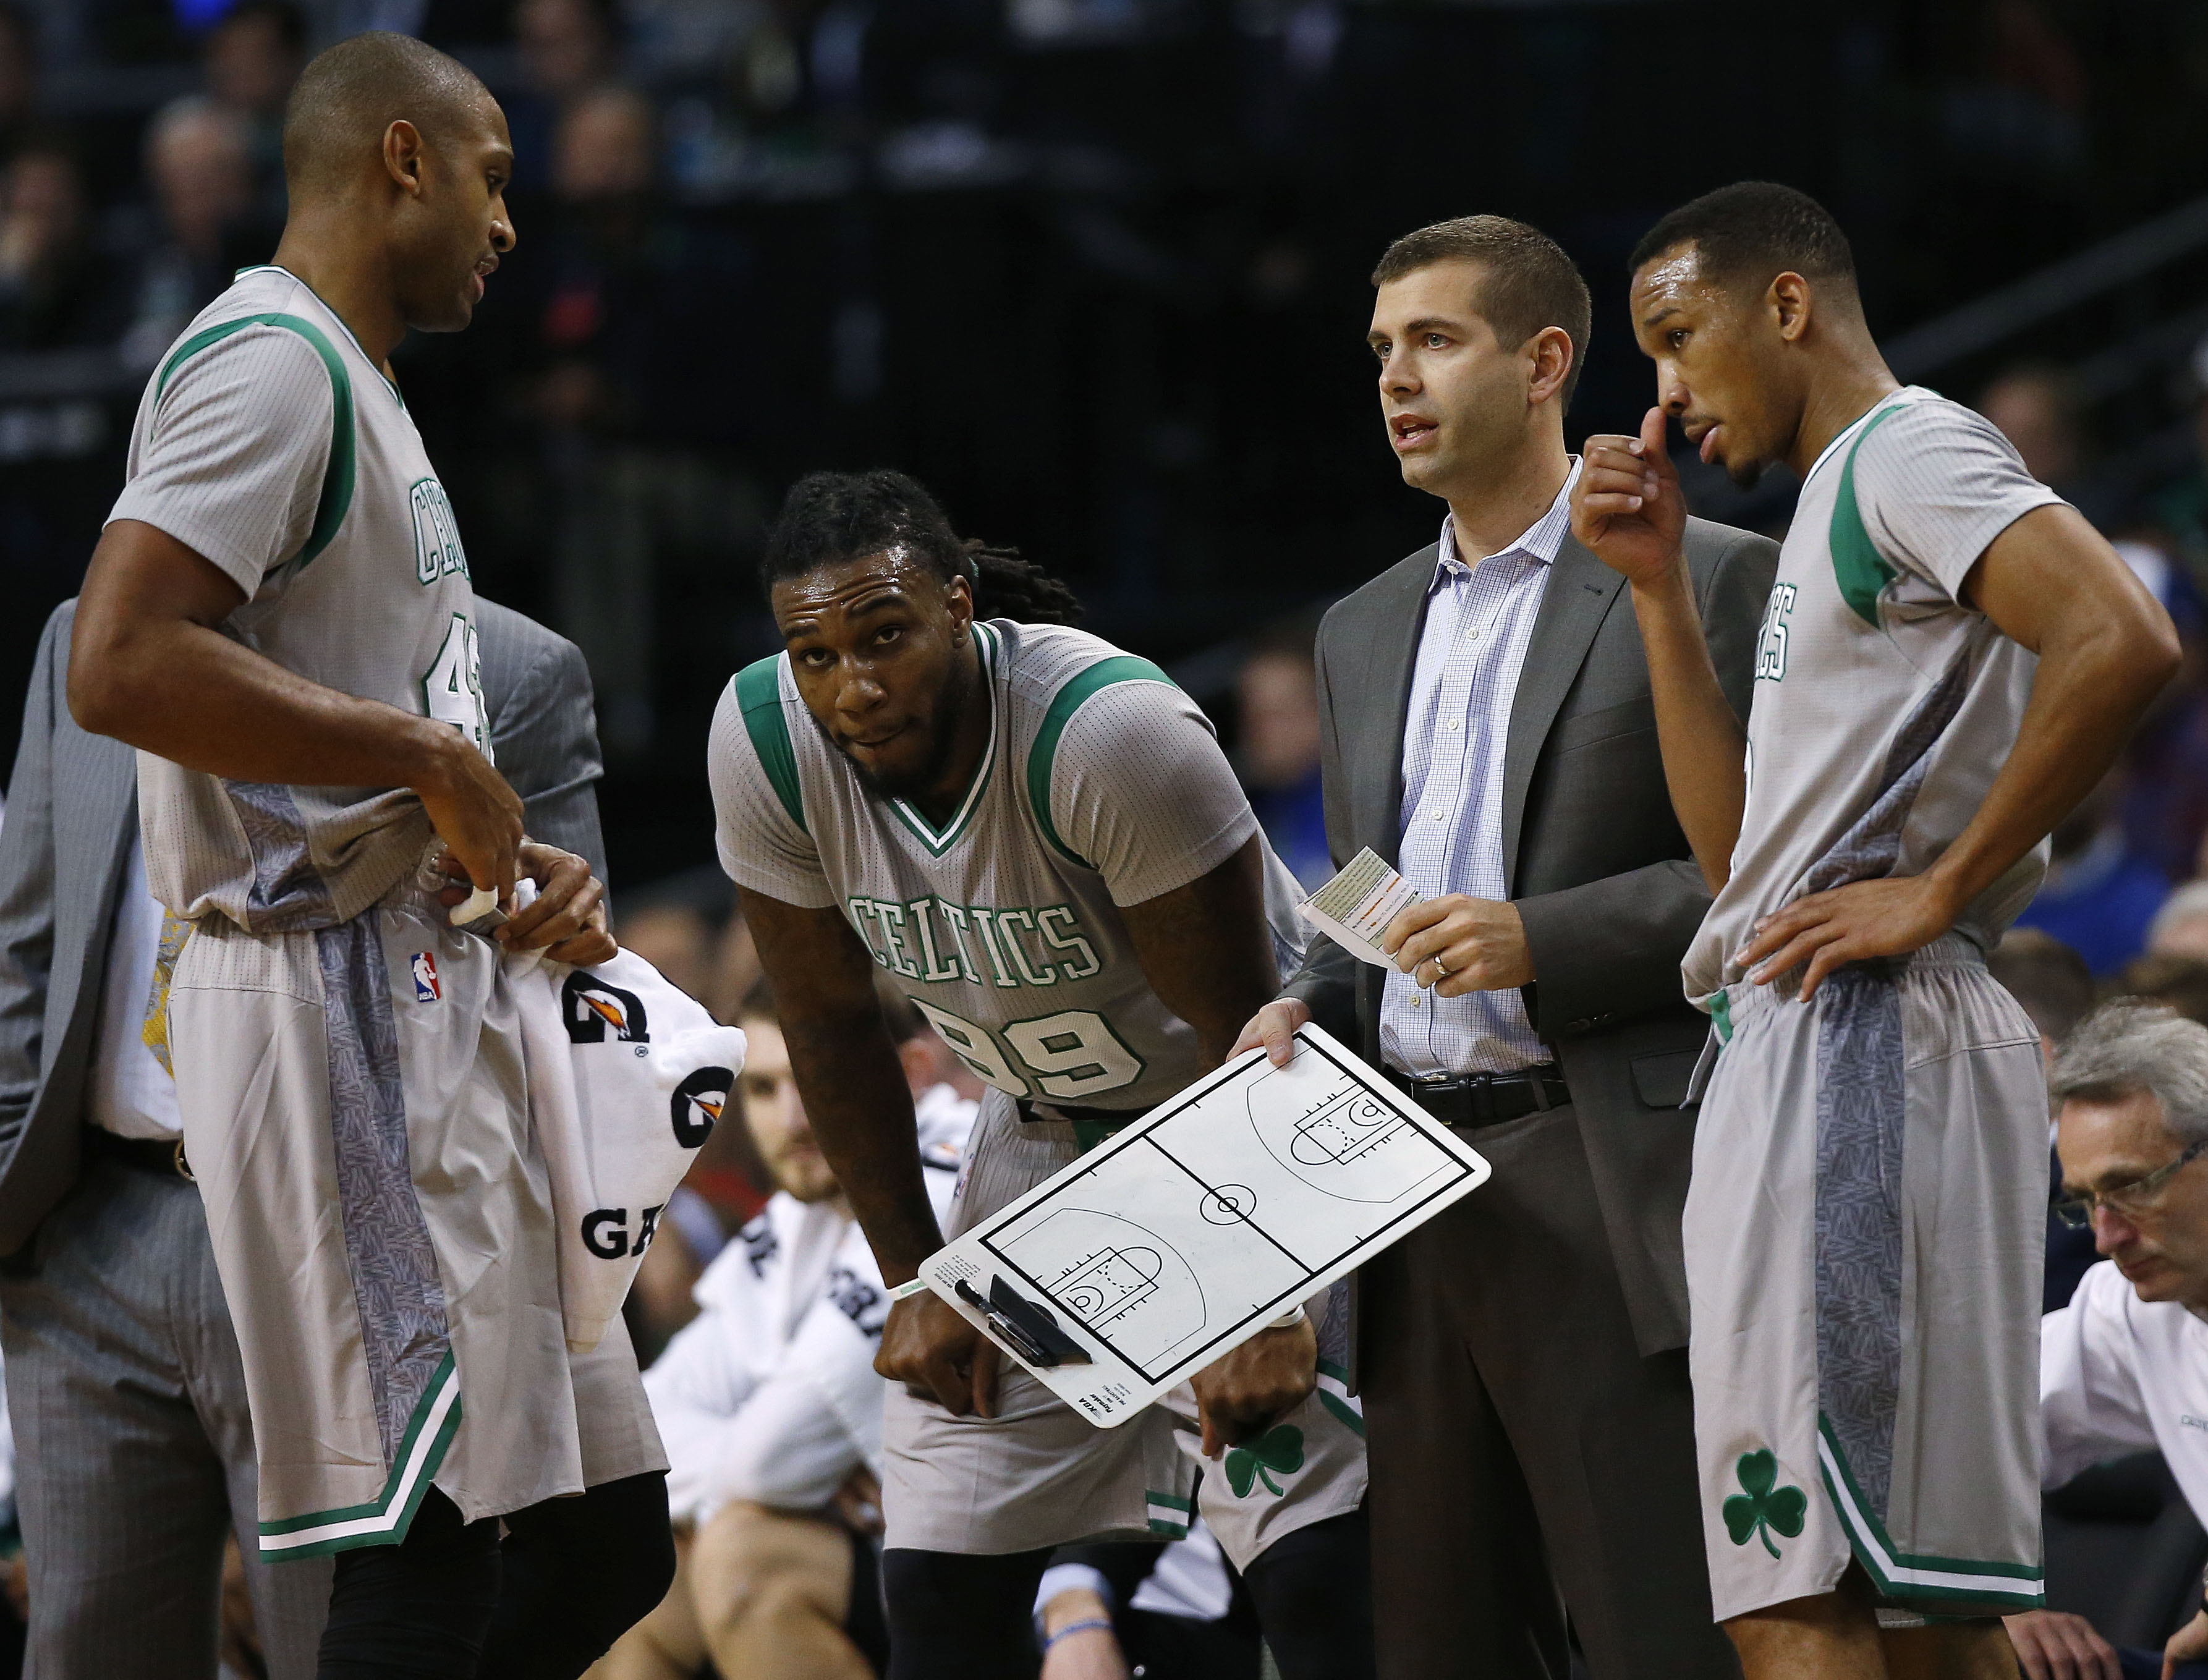 Dec 2, 2016; Boston, MA, USA; Boston Celtics head coach Brad Stevens talks with Boston Celtics center Al Horford (42) and forward Jae Crowder (99) and guard Avery Bradley (0) during the first half against the Sacramento Kings at TD Garden. Mandatory Credit: Winslow Townson-USA TODAY Sports